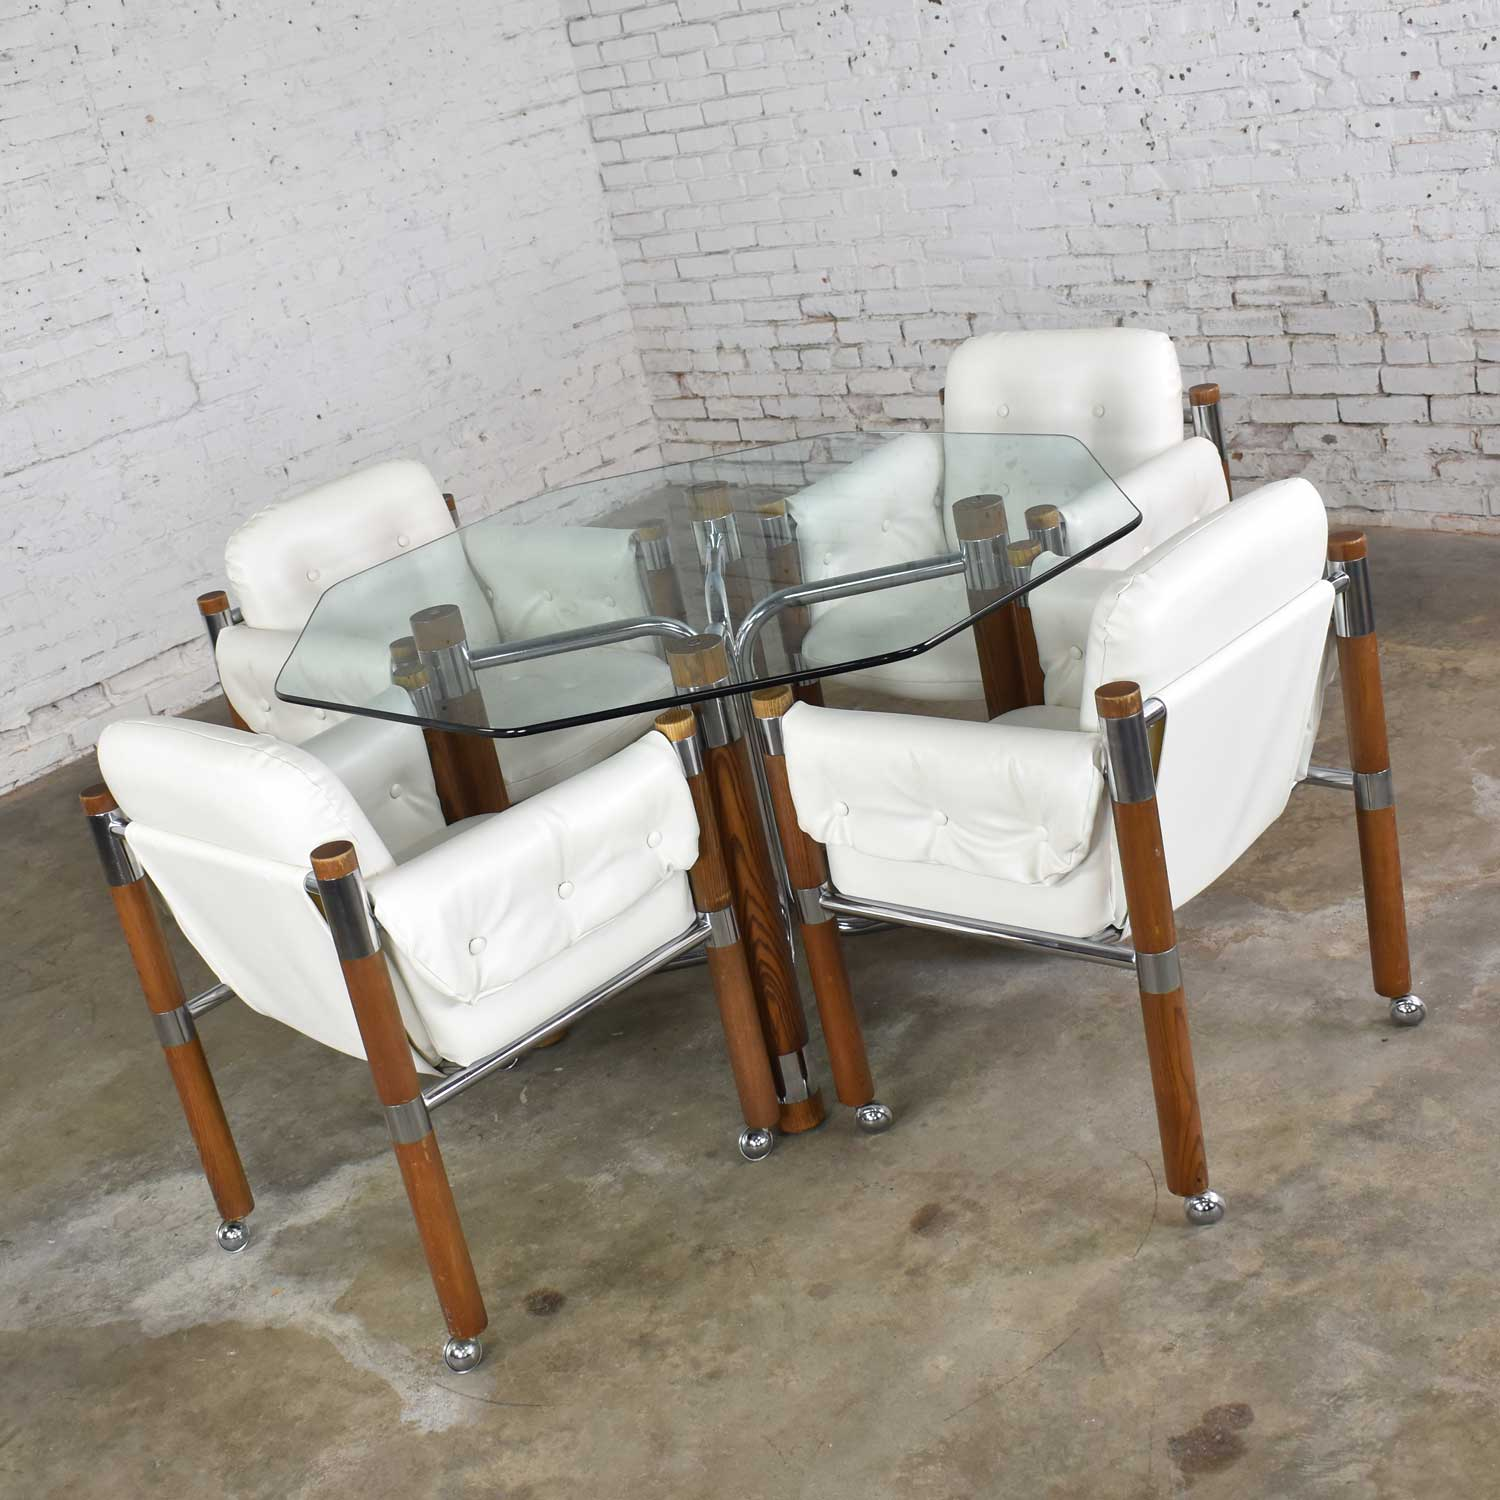 Modern Game Table Or Dining Table Glass Chrome Oak With Four White Rolling Chairs Warehouse 414